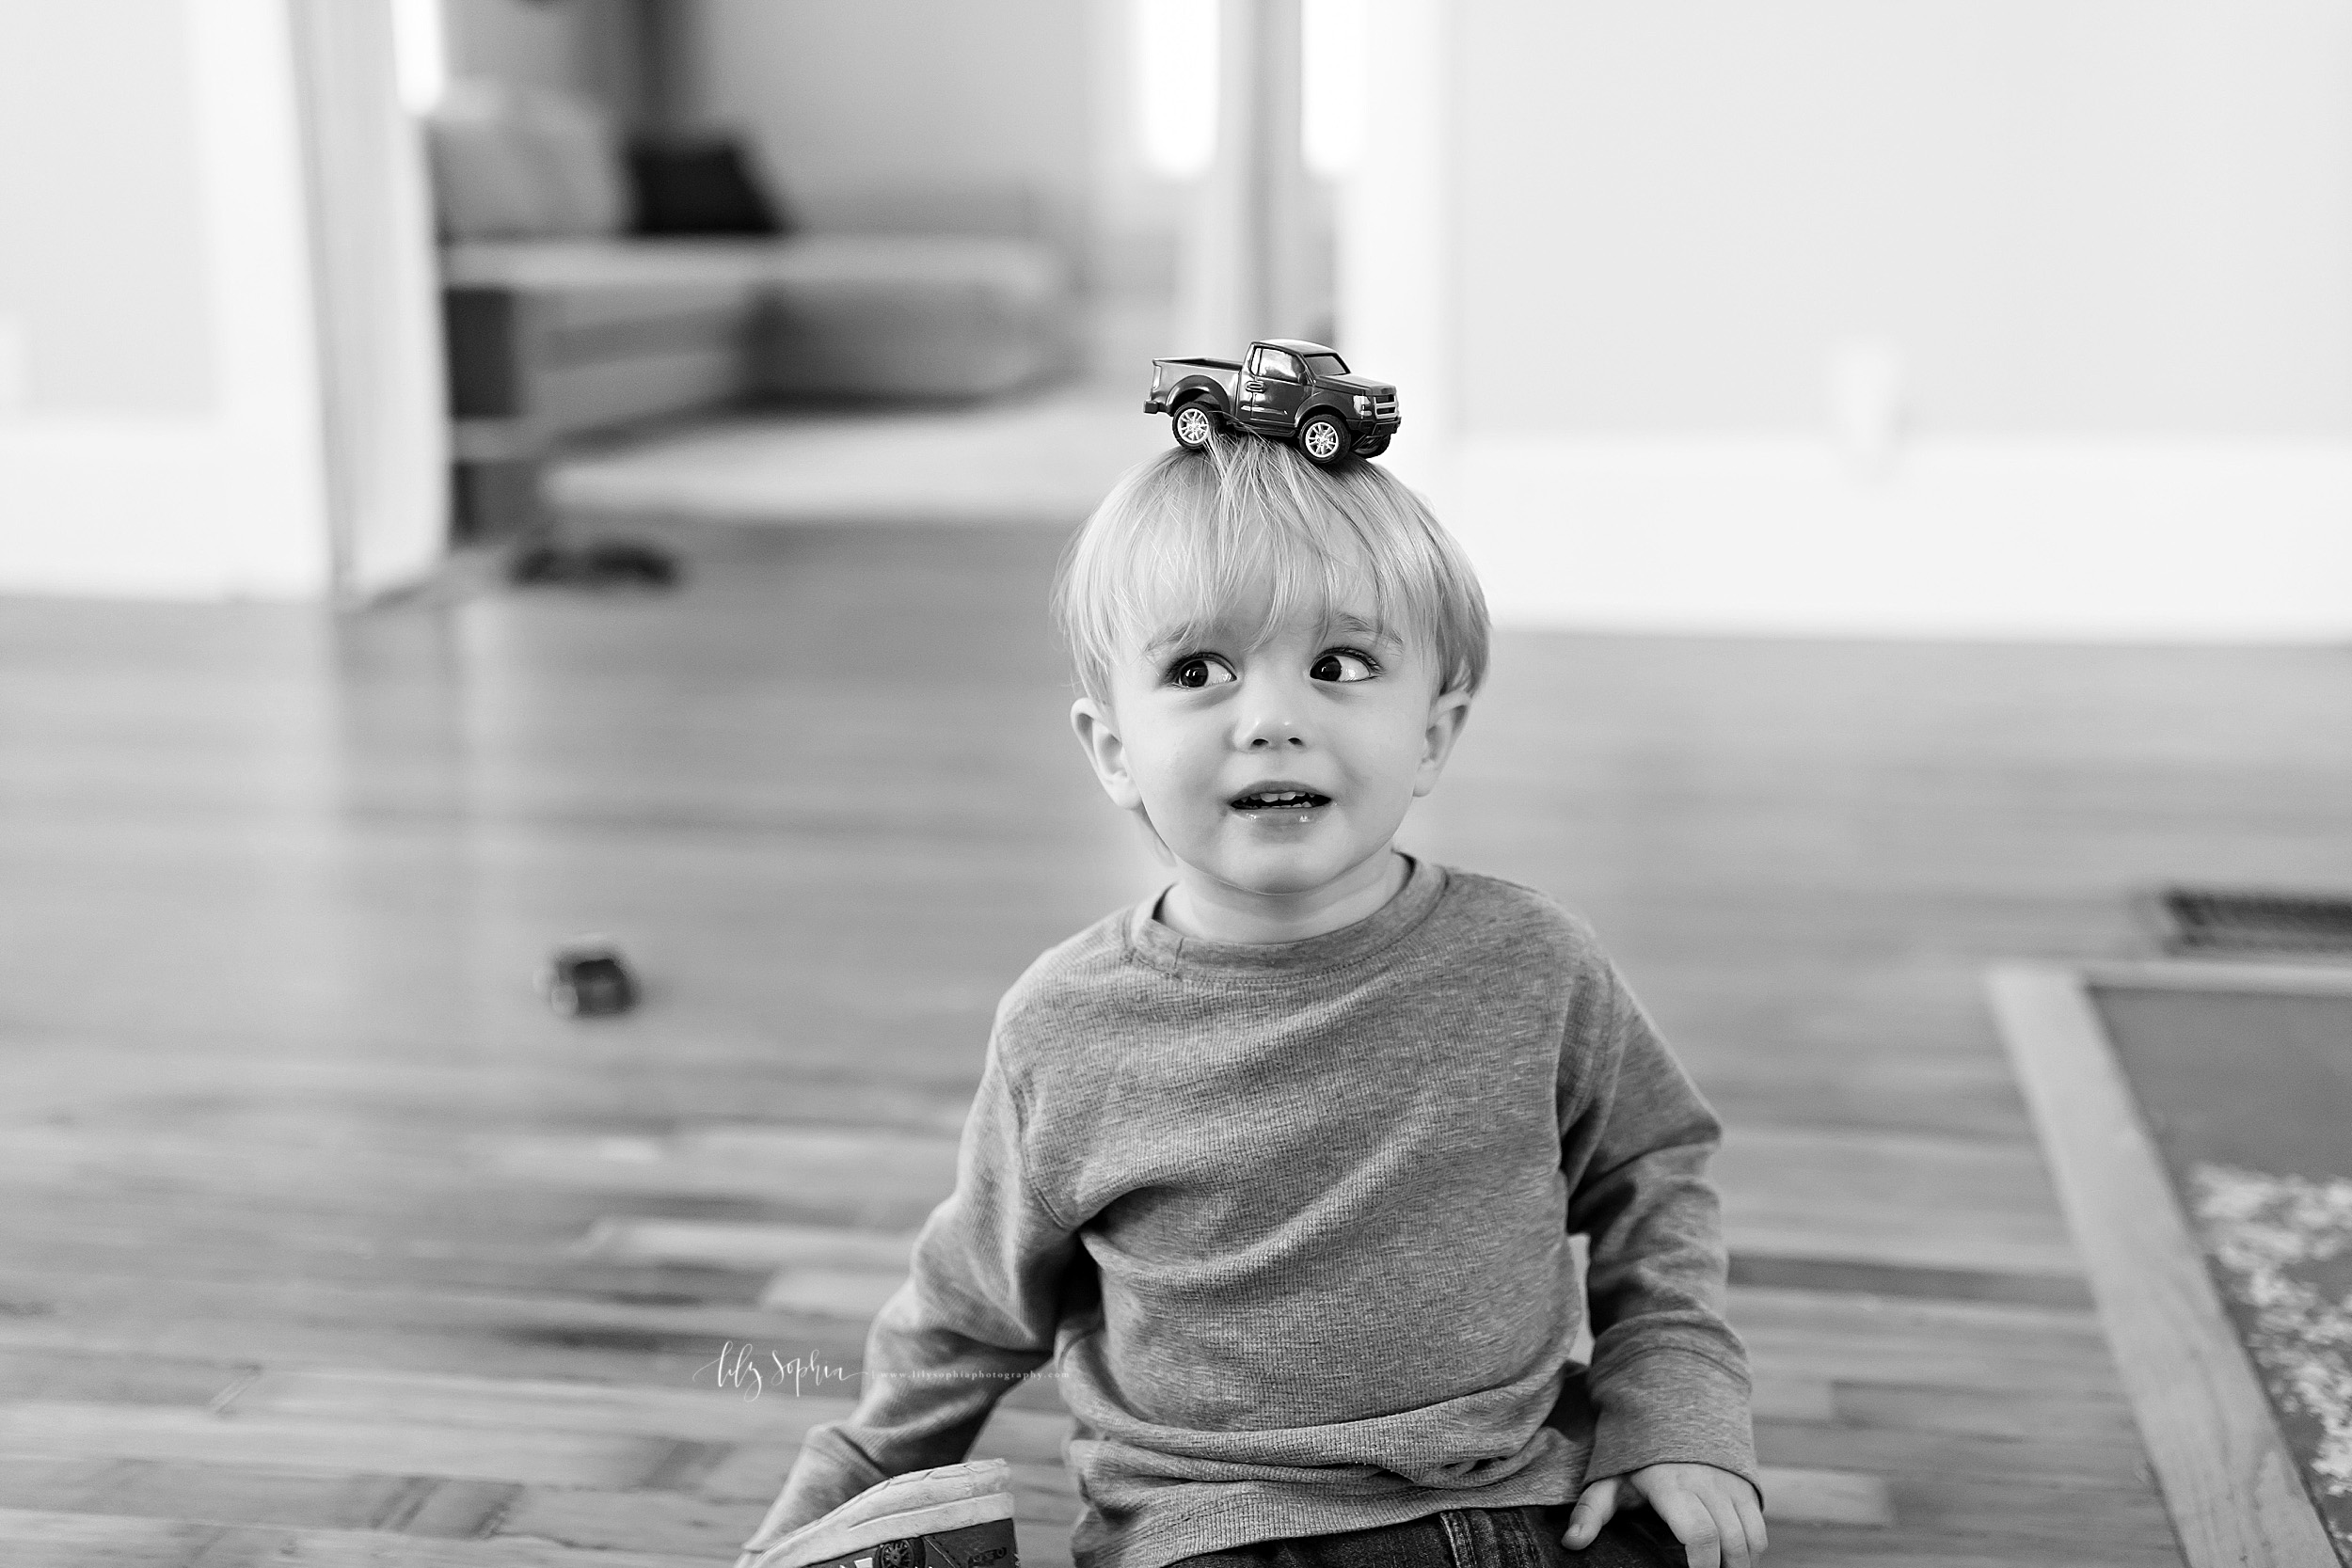 atlanta-adair-park-west-end-sandy-springs-buckhead-virginia-highlands-west-end-decatur-lily-sophia-photography-toddler-boy-family-in-home-lifestyle-session-photos_1184.jpg